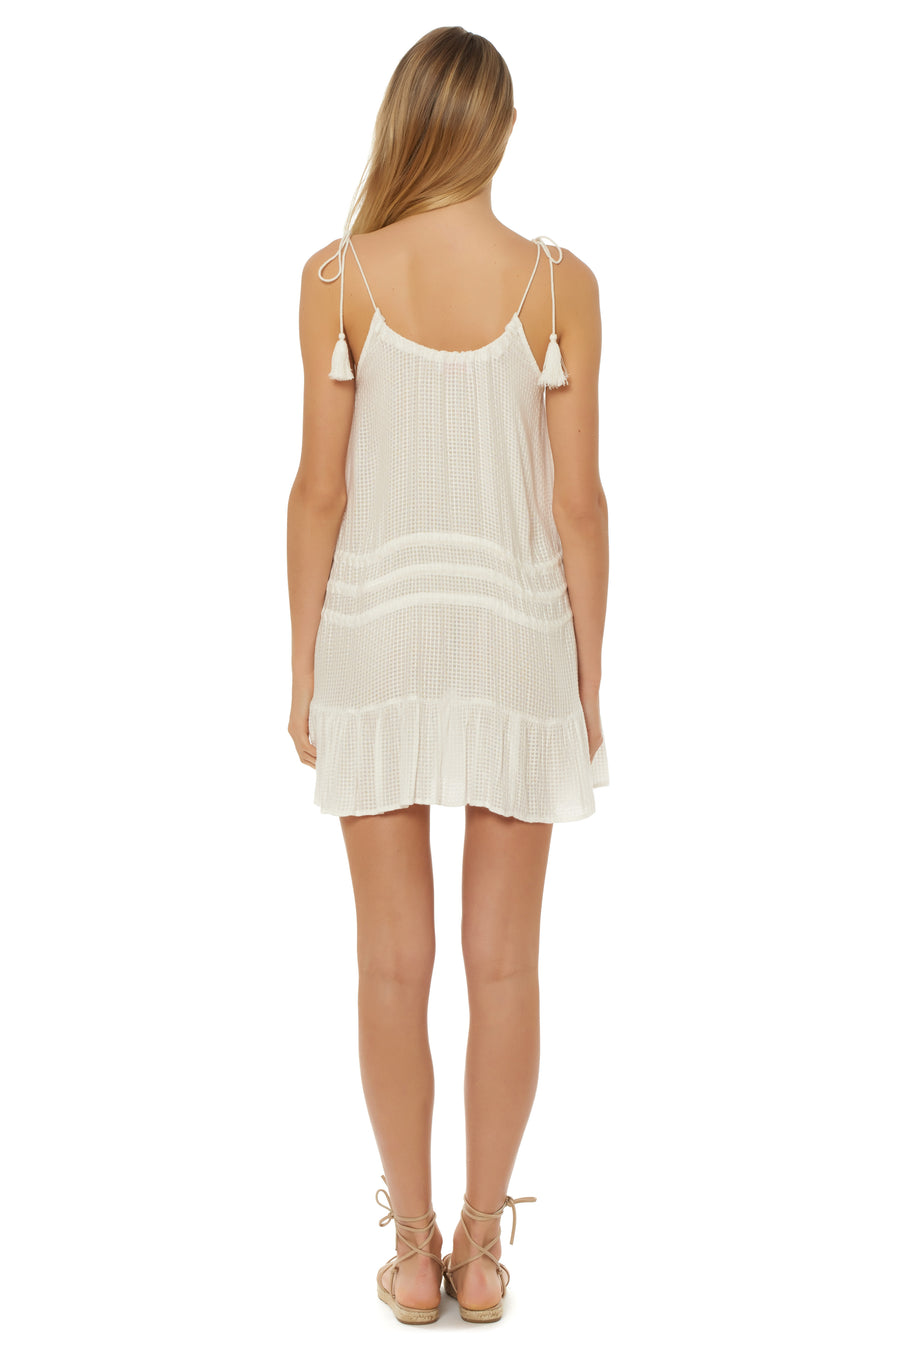 Drawstring Dress Cover Up - White - Red Carter